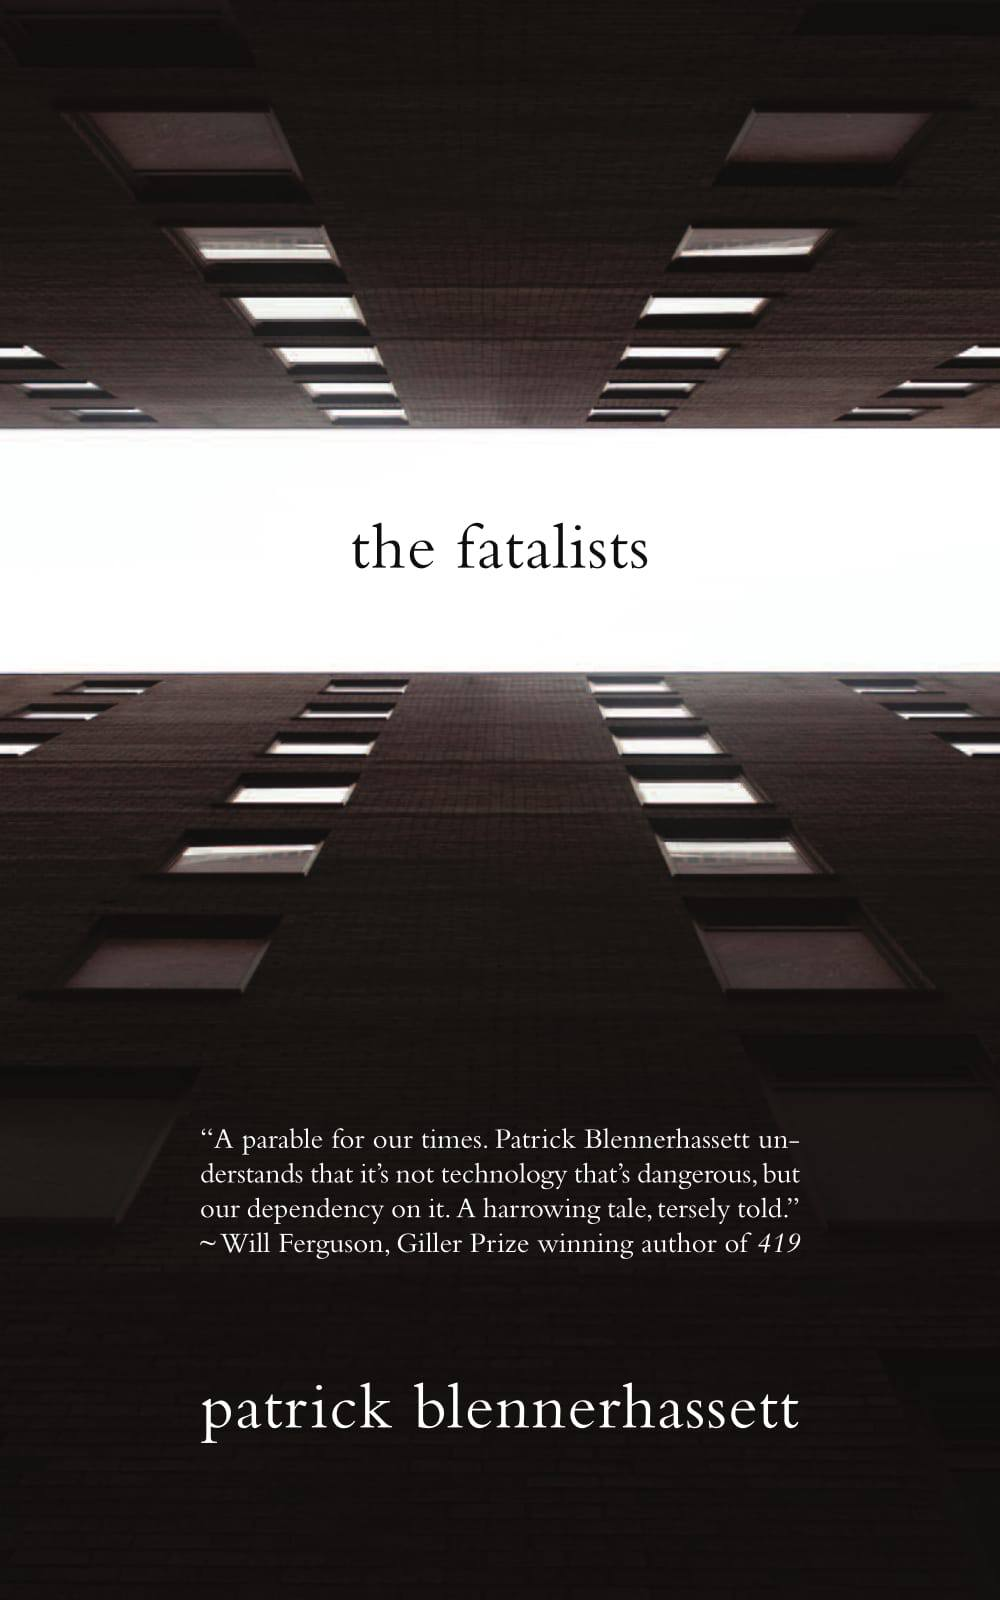 Image: The Fatalists